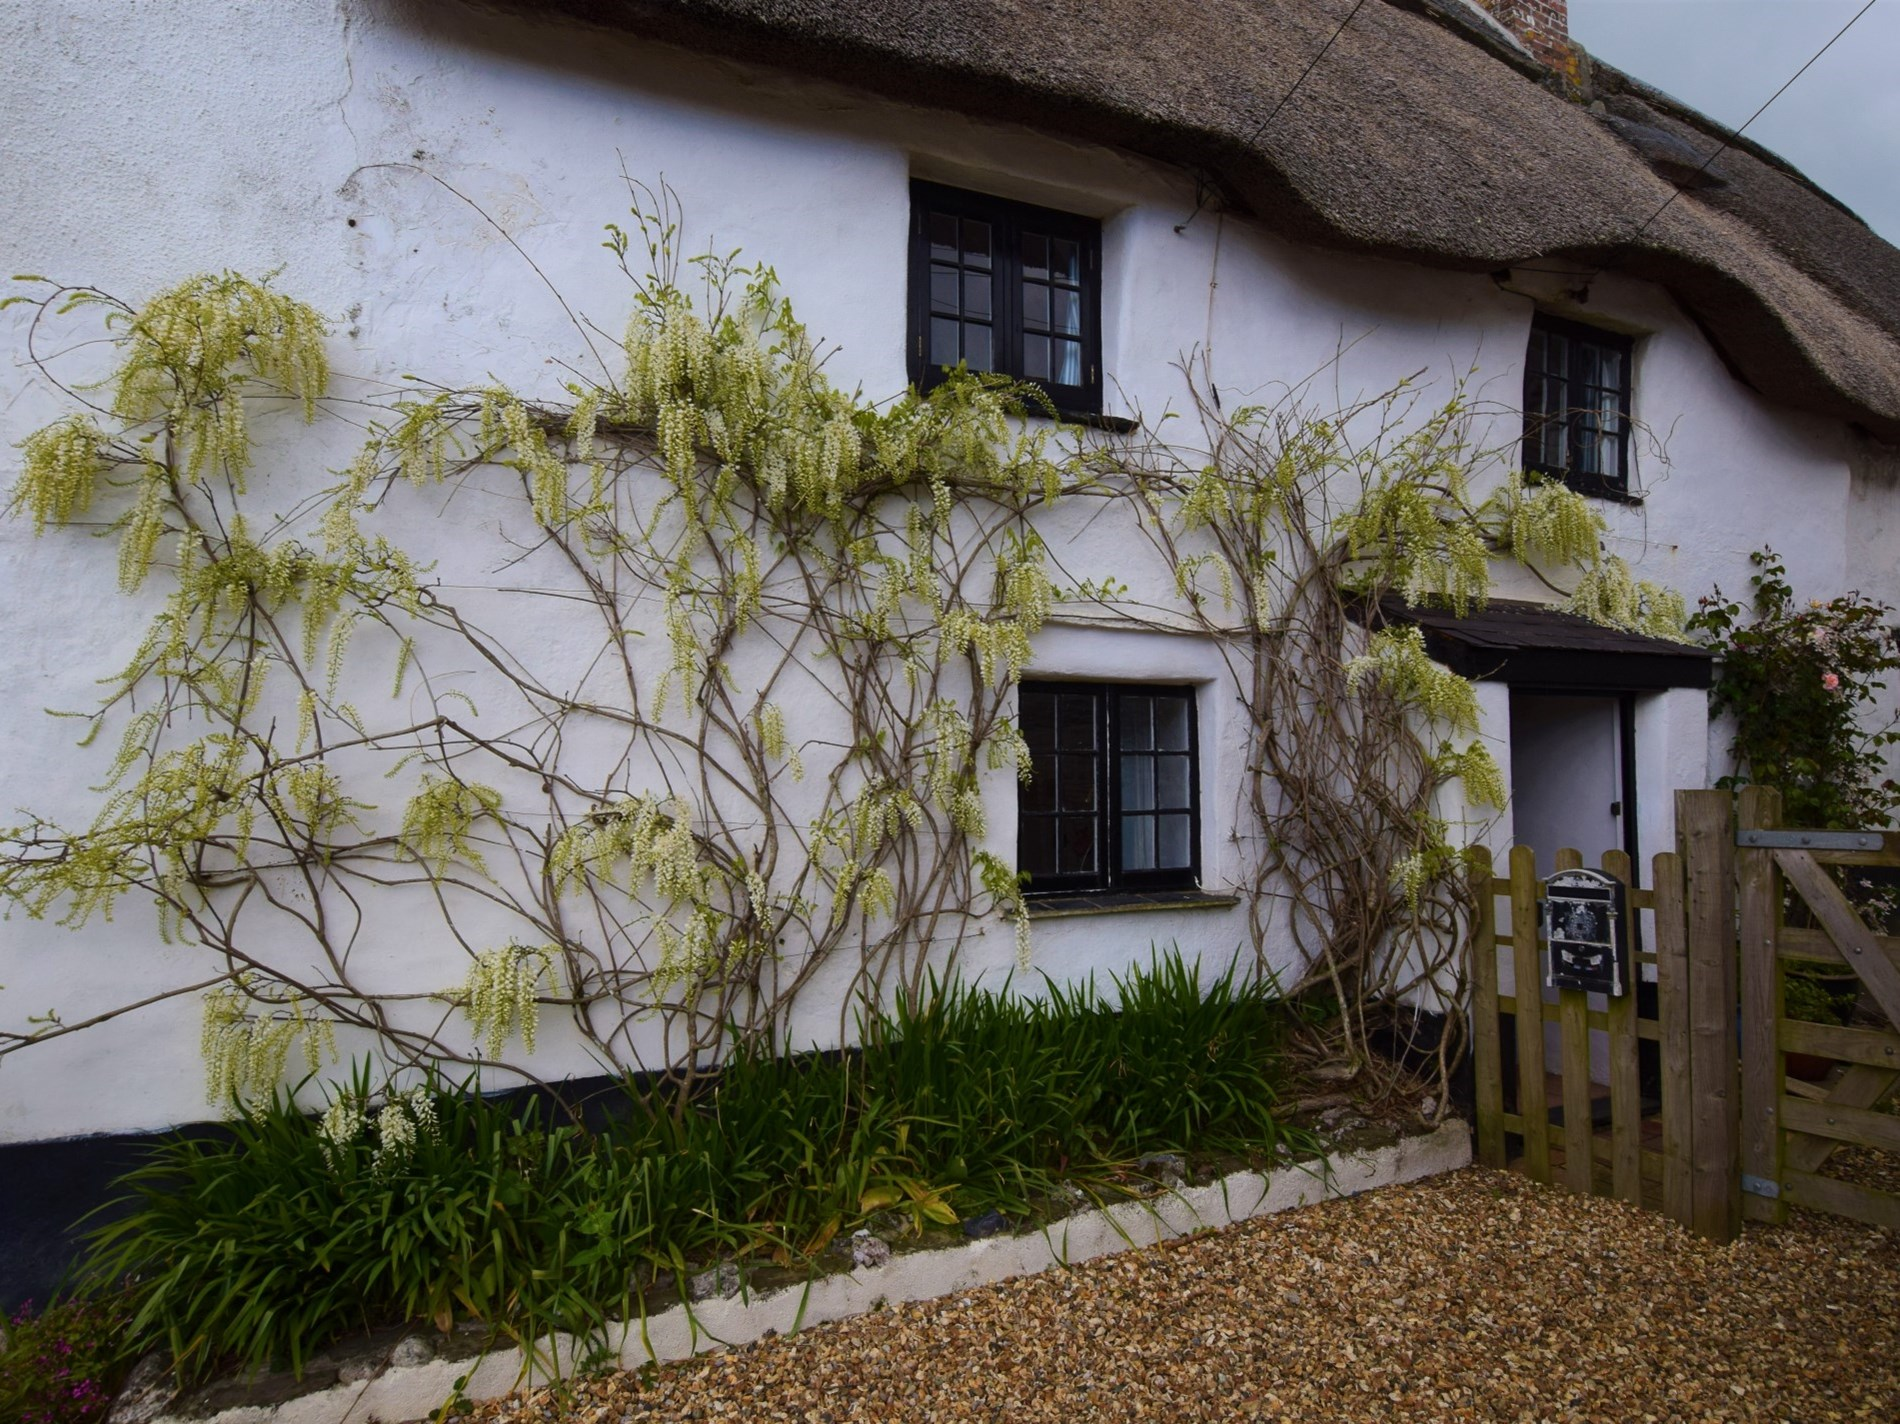 View towards the delightful thatch cottage